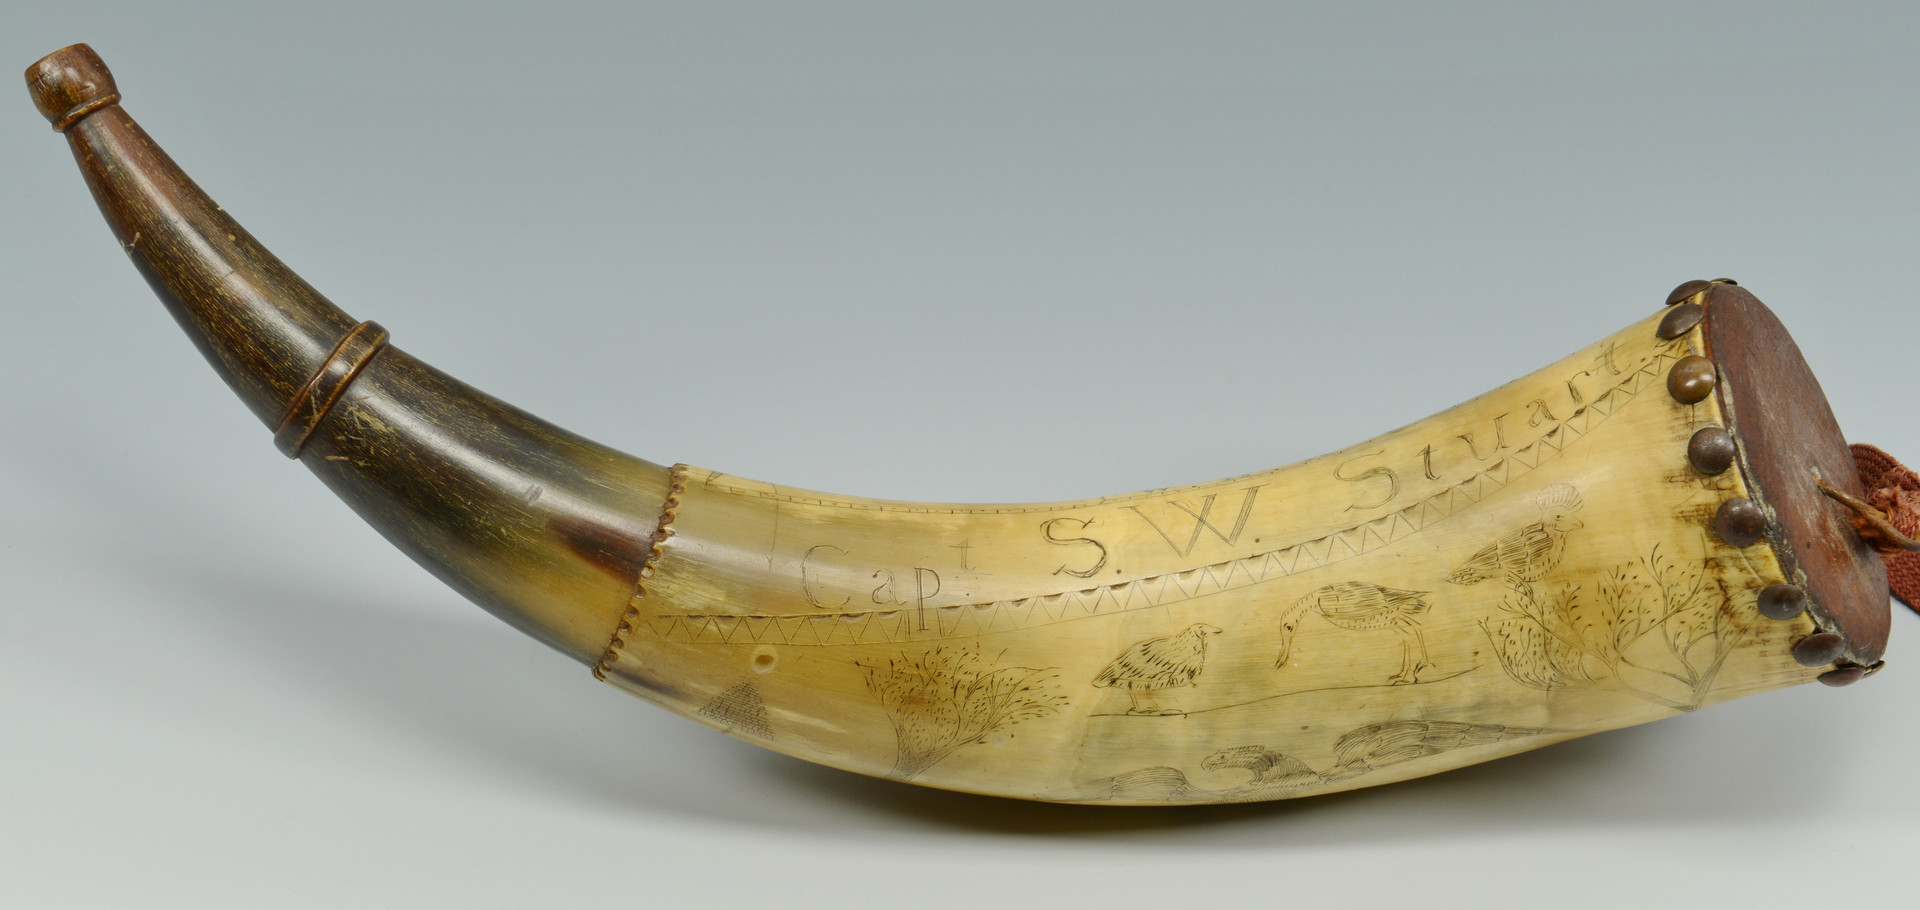 Wood Bison Powder Horns likewise Planning And Designing Outdoor Wedding likewise A Brief History Of The Toothbrush in addition Mountain Man Inspire as well Gunpowder Then And Now Paper Cartridges. on 18th century powder horns